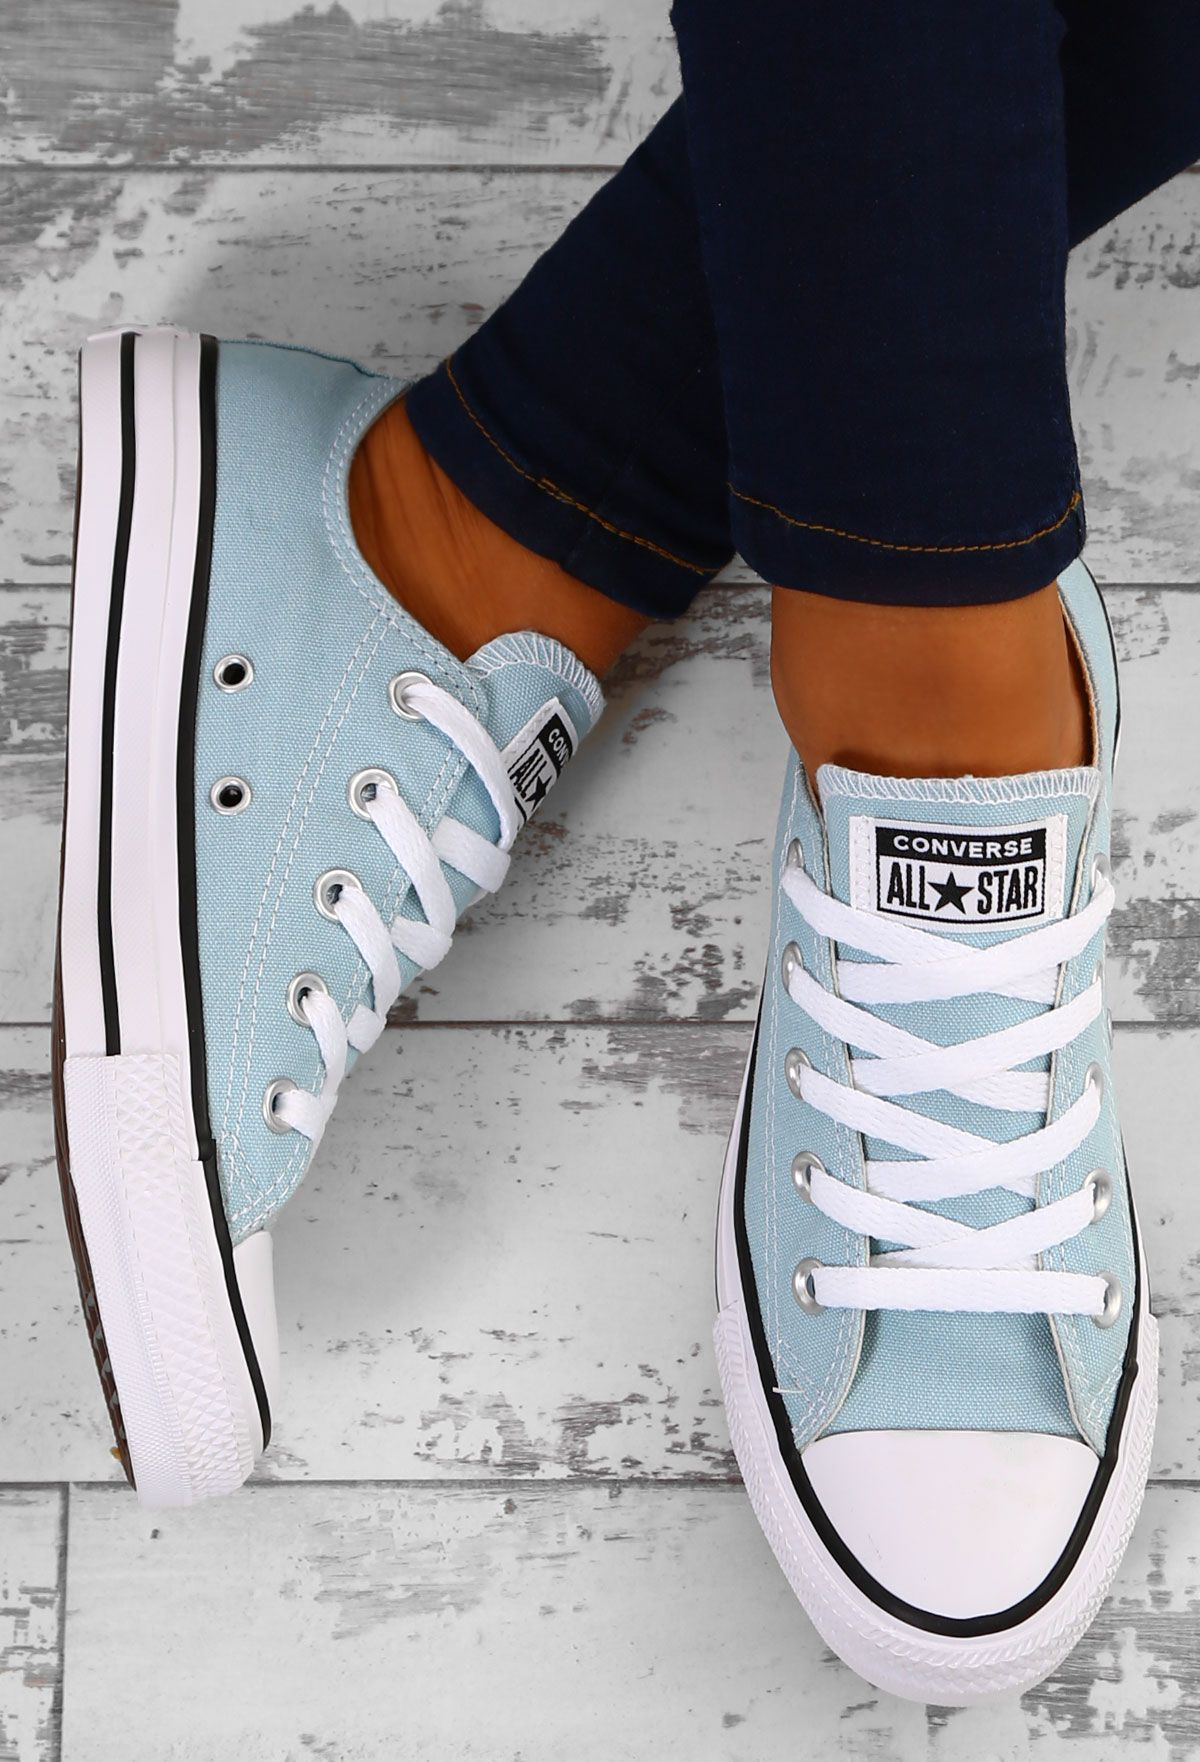 97b810002 Shop women s converse and blue converse trainers at Pink Boutique - Treat  your feet to new turquoise converse today!